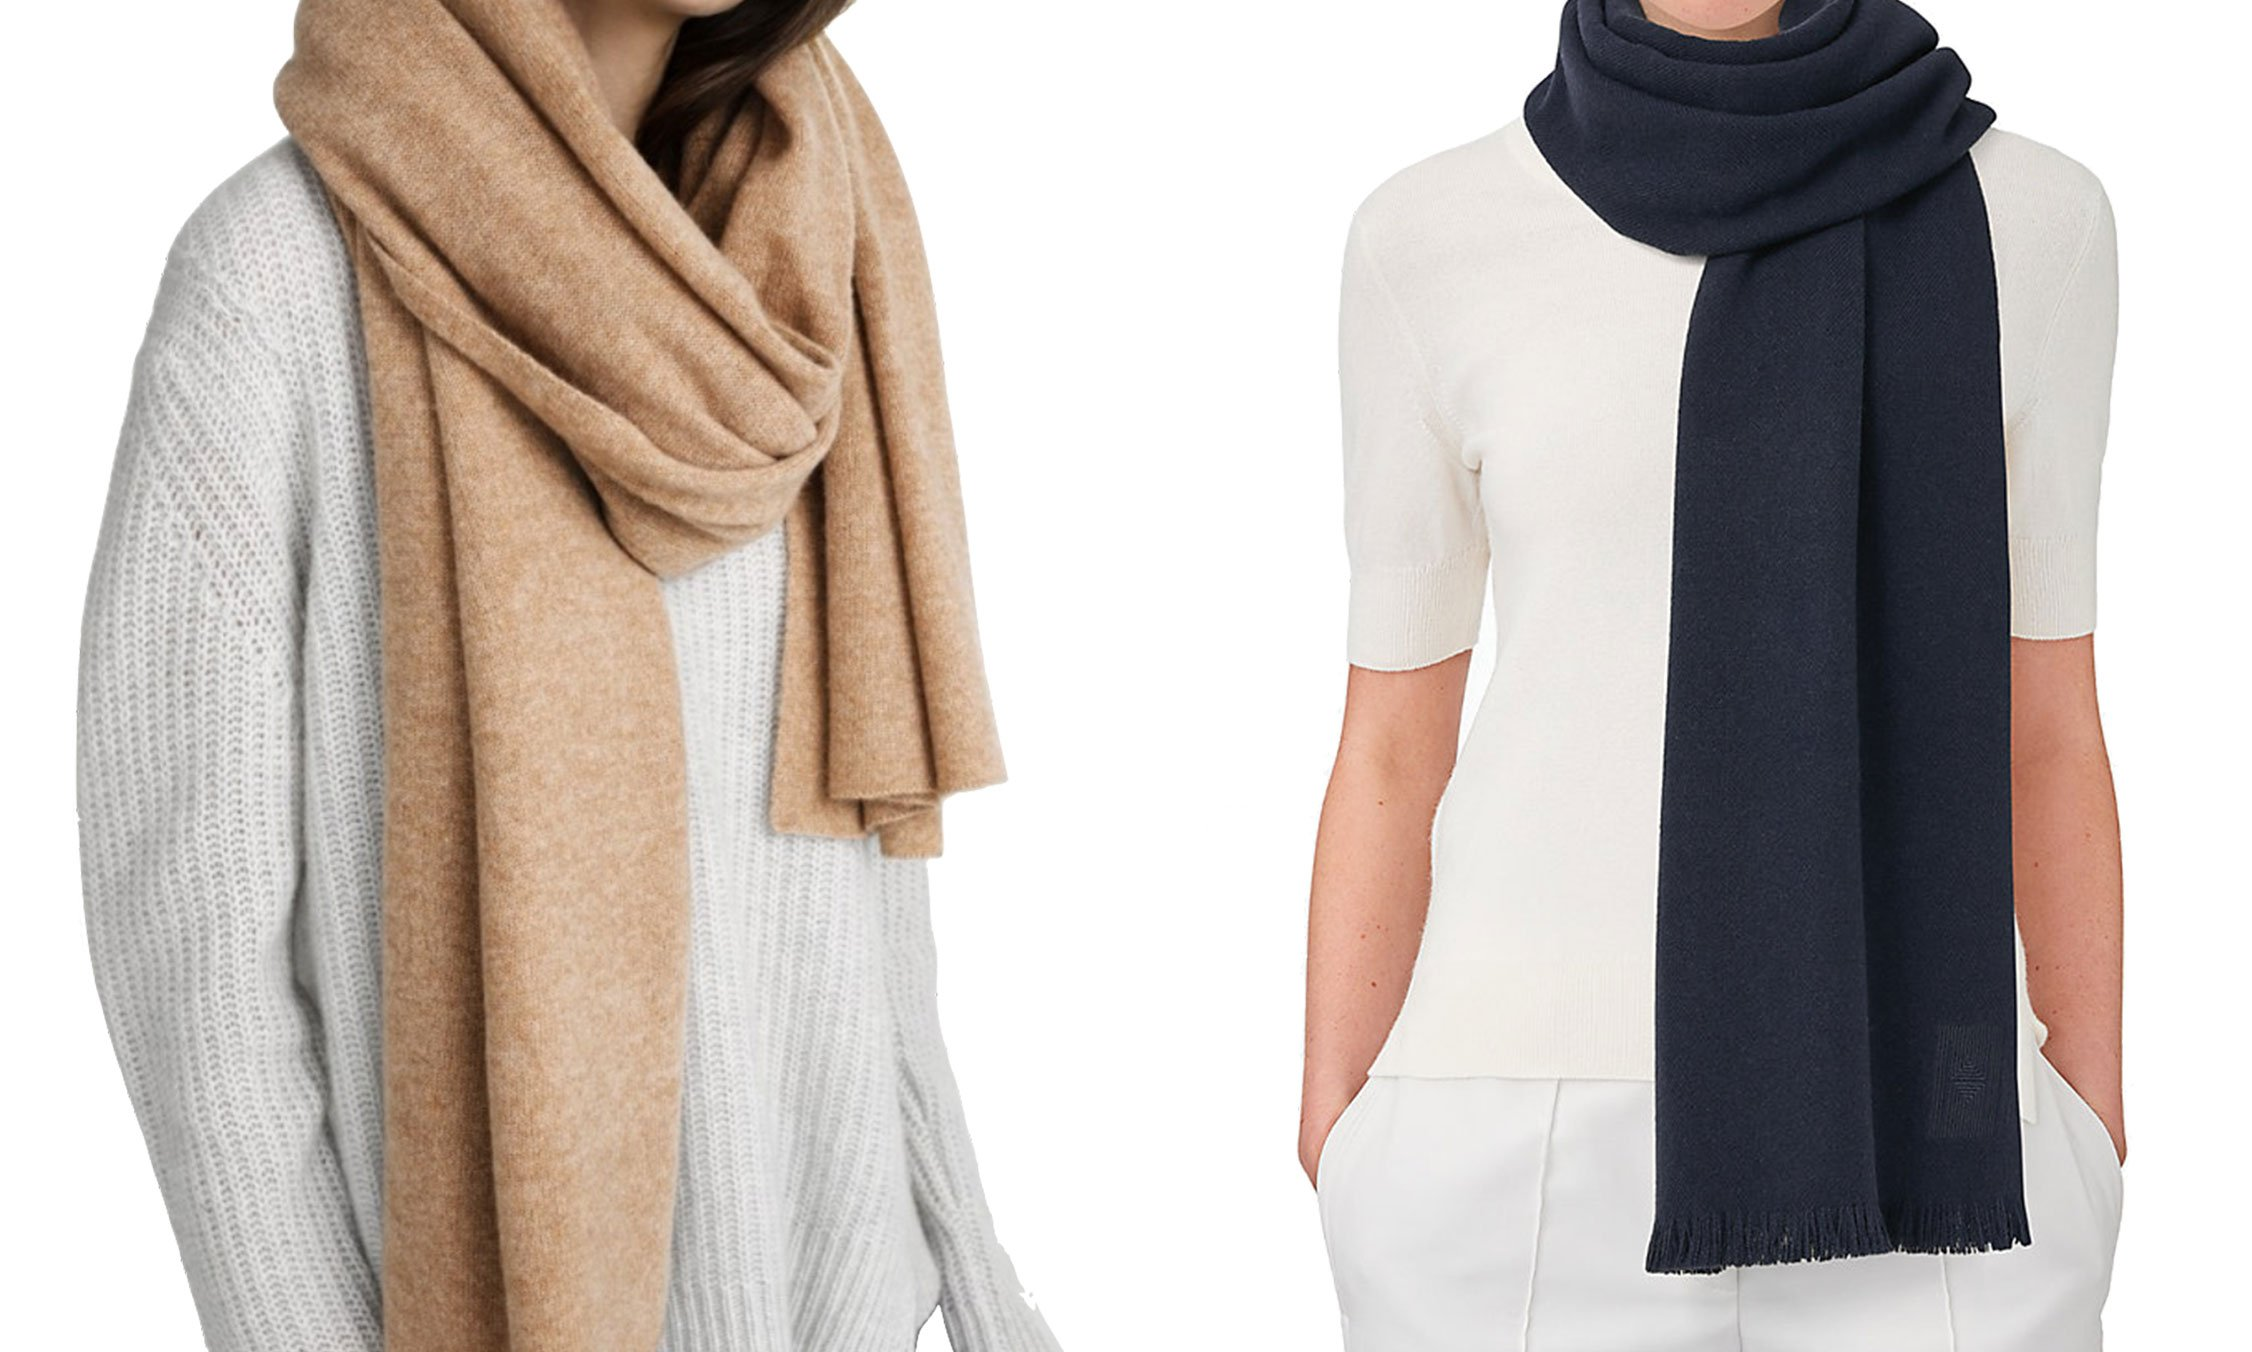 White + Warren Cashmere Travel Wrap in Camel Heather and Hermès Soft Cashmere Stole in Marine